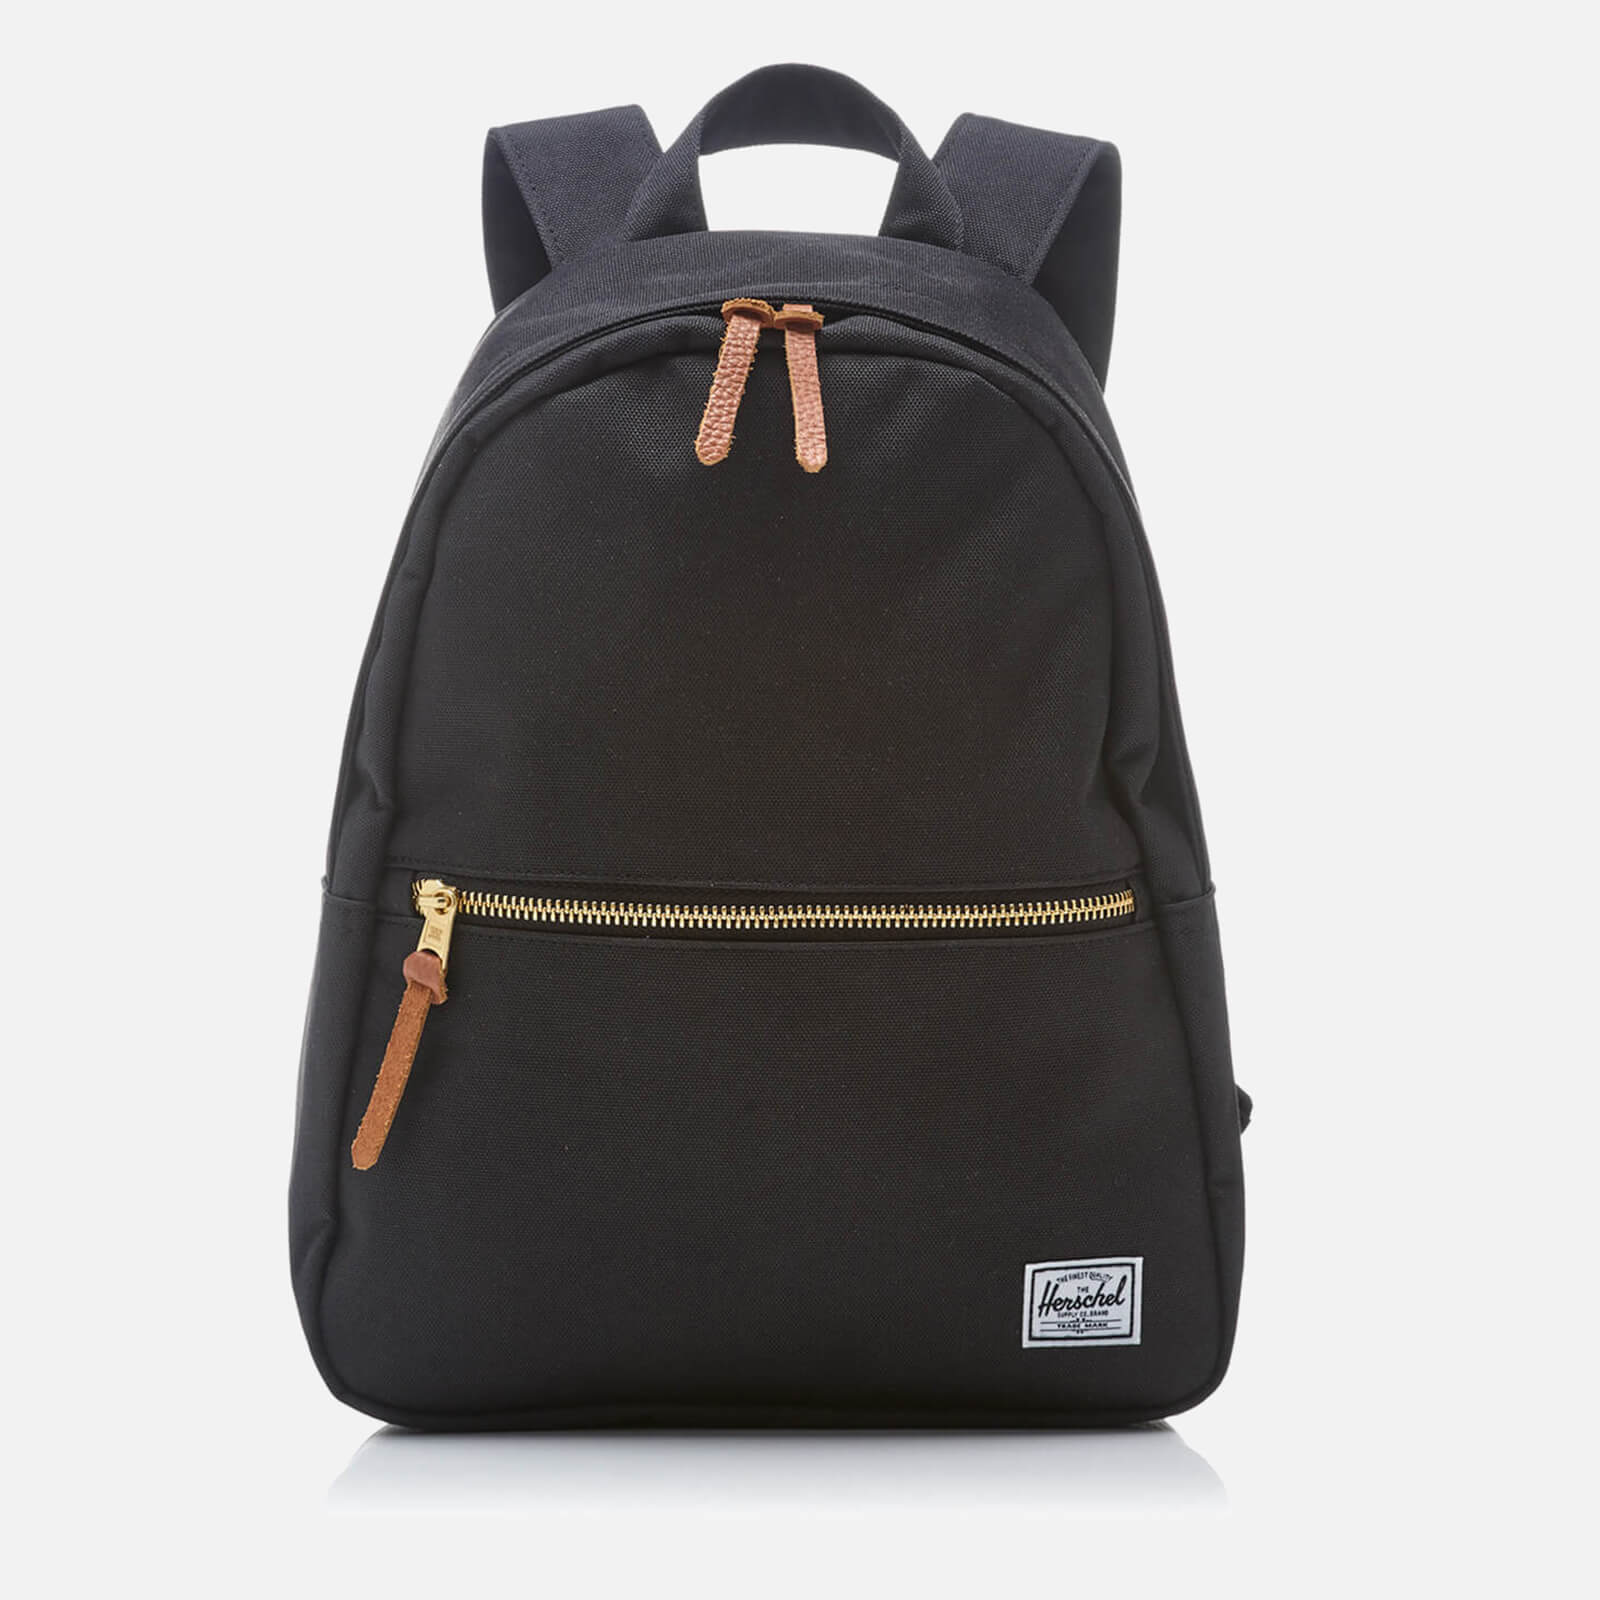 f08c5750f21 Herschel Supply Co. Women s Town Backpack - Black - Free UK Delivery over  £50